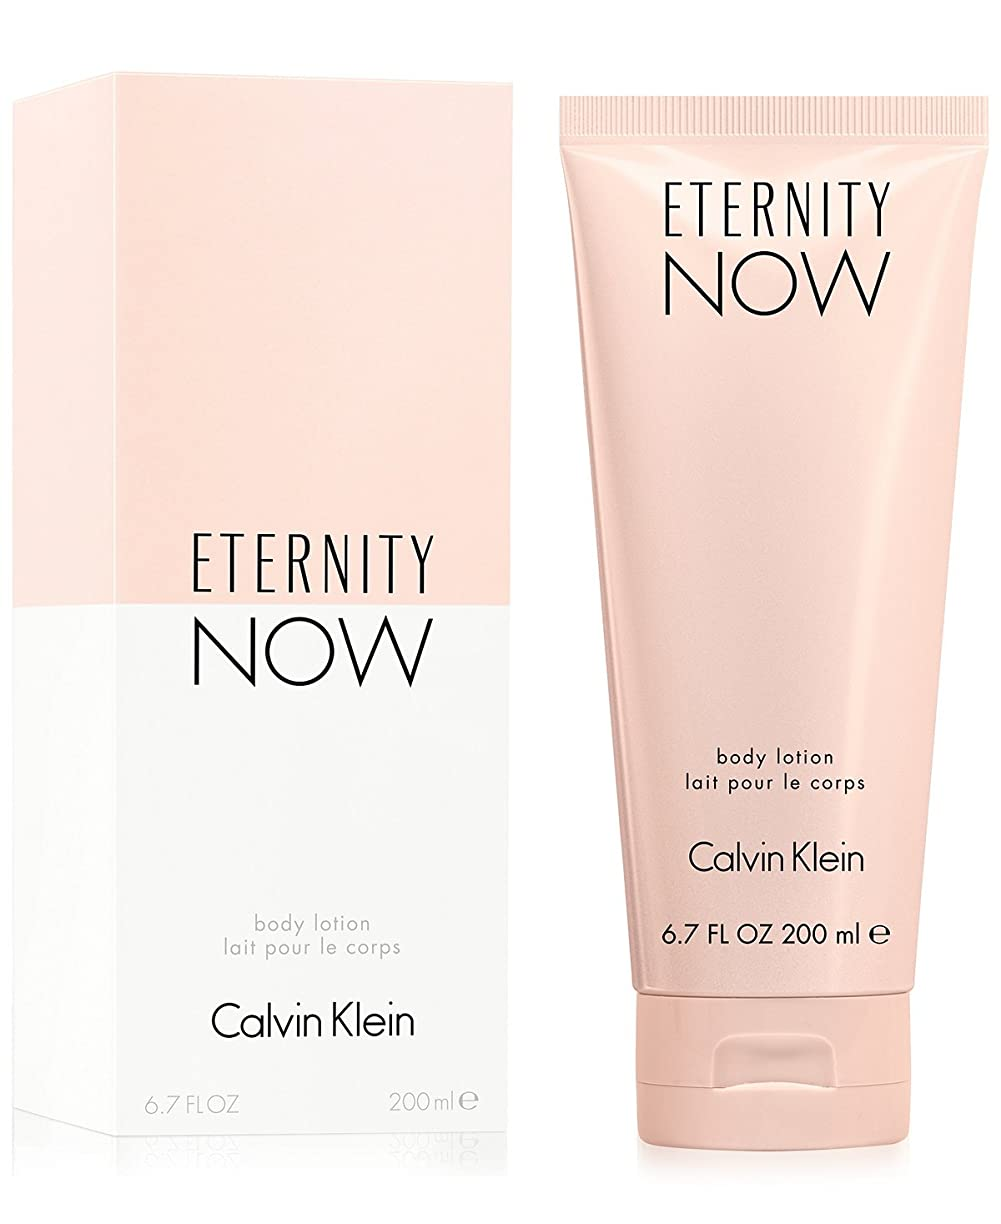 お嬢粉砕する絶壁Eternity Now (エタニティー ナウ) 6.7 oz (200ml) Body Lotion by Calvin Klein for Women